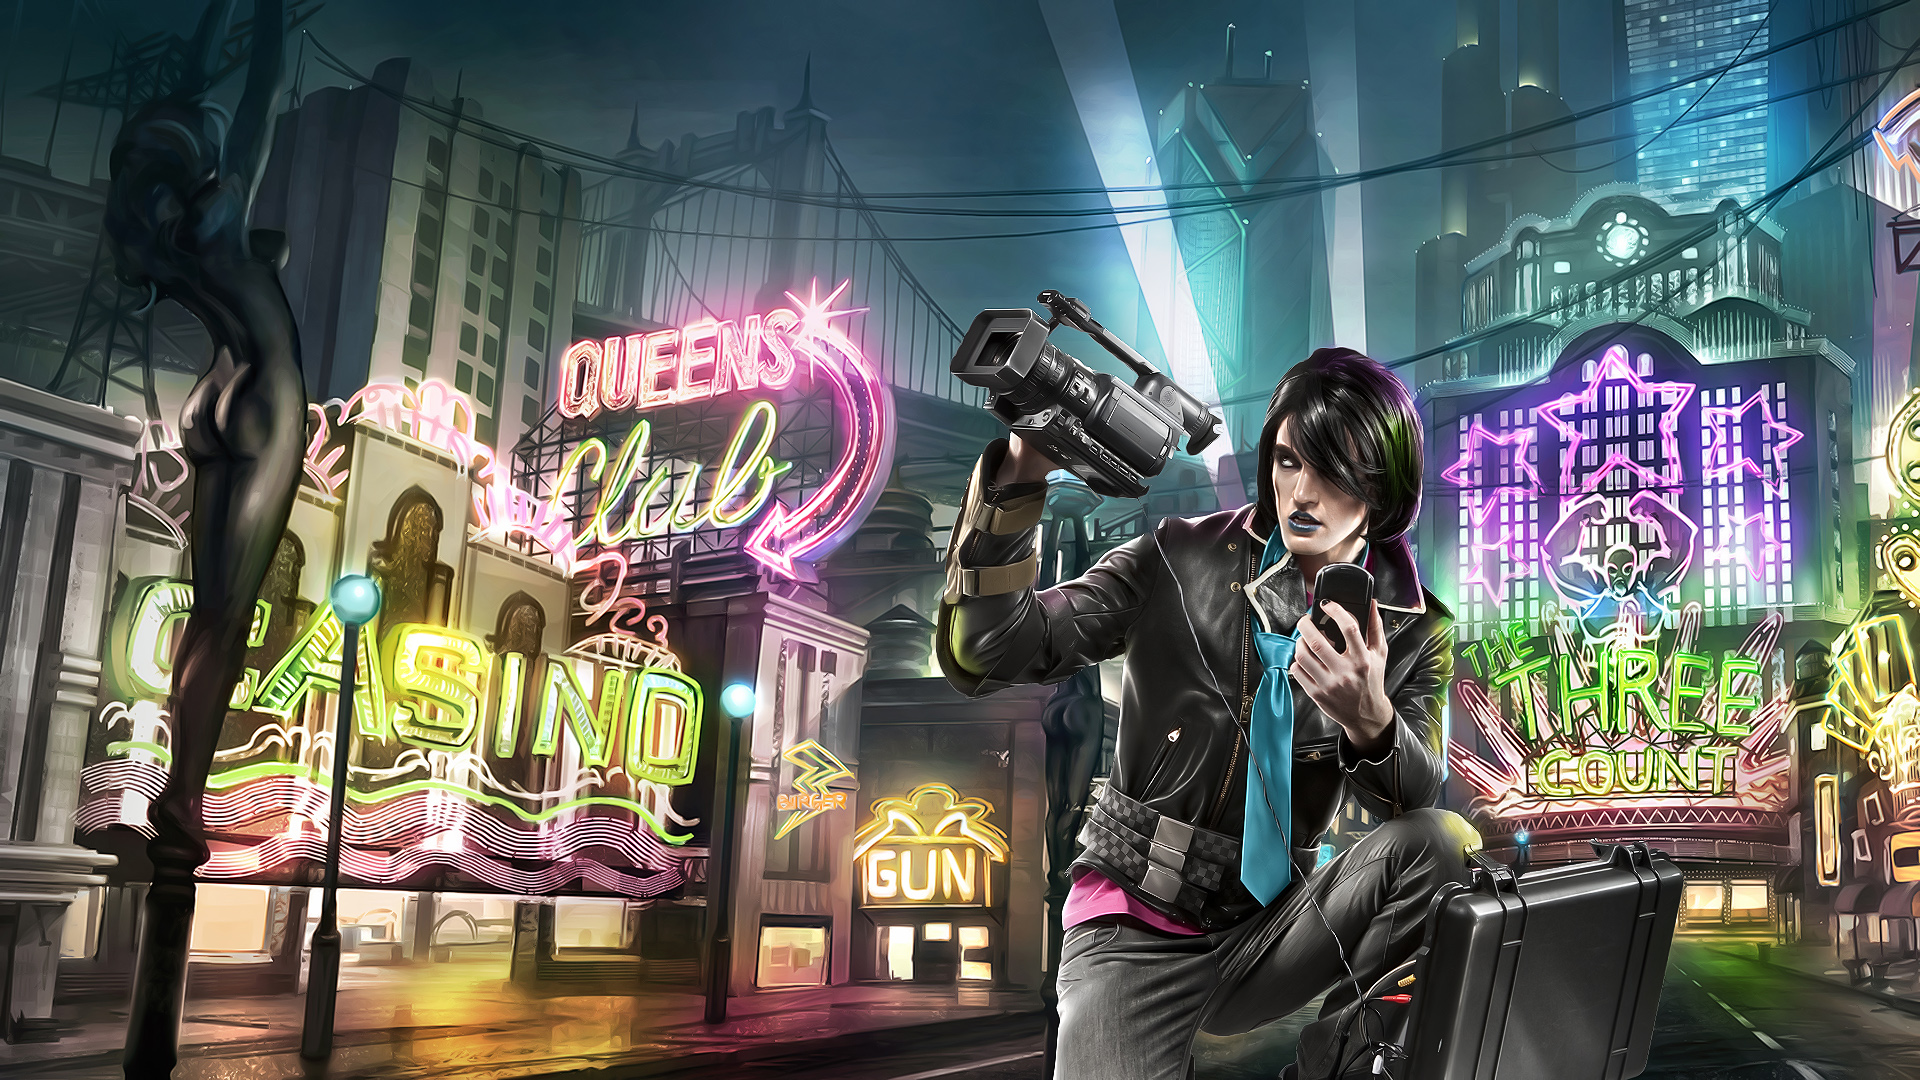 Saints row the third full hd wallpaper and background image video game saints row the third wallpaper voltagebd Images